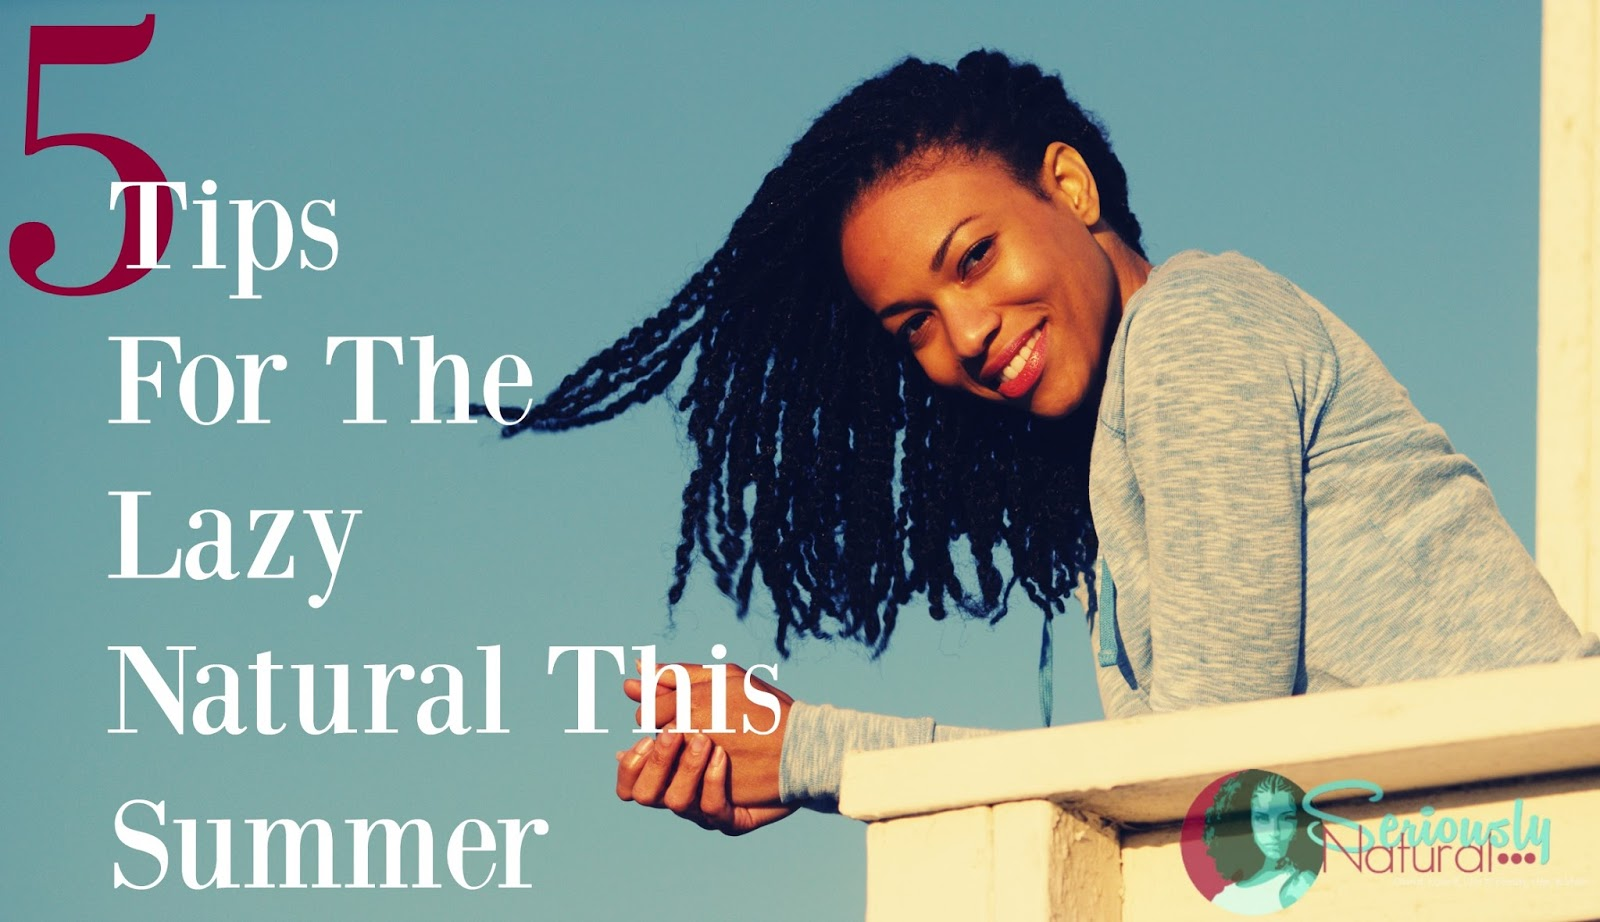 5 Tips For The Lazy Natural This Summer